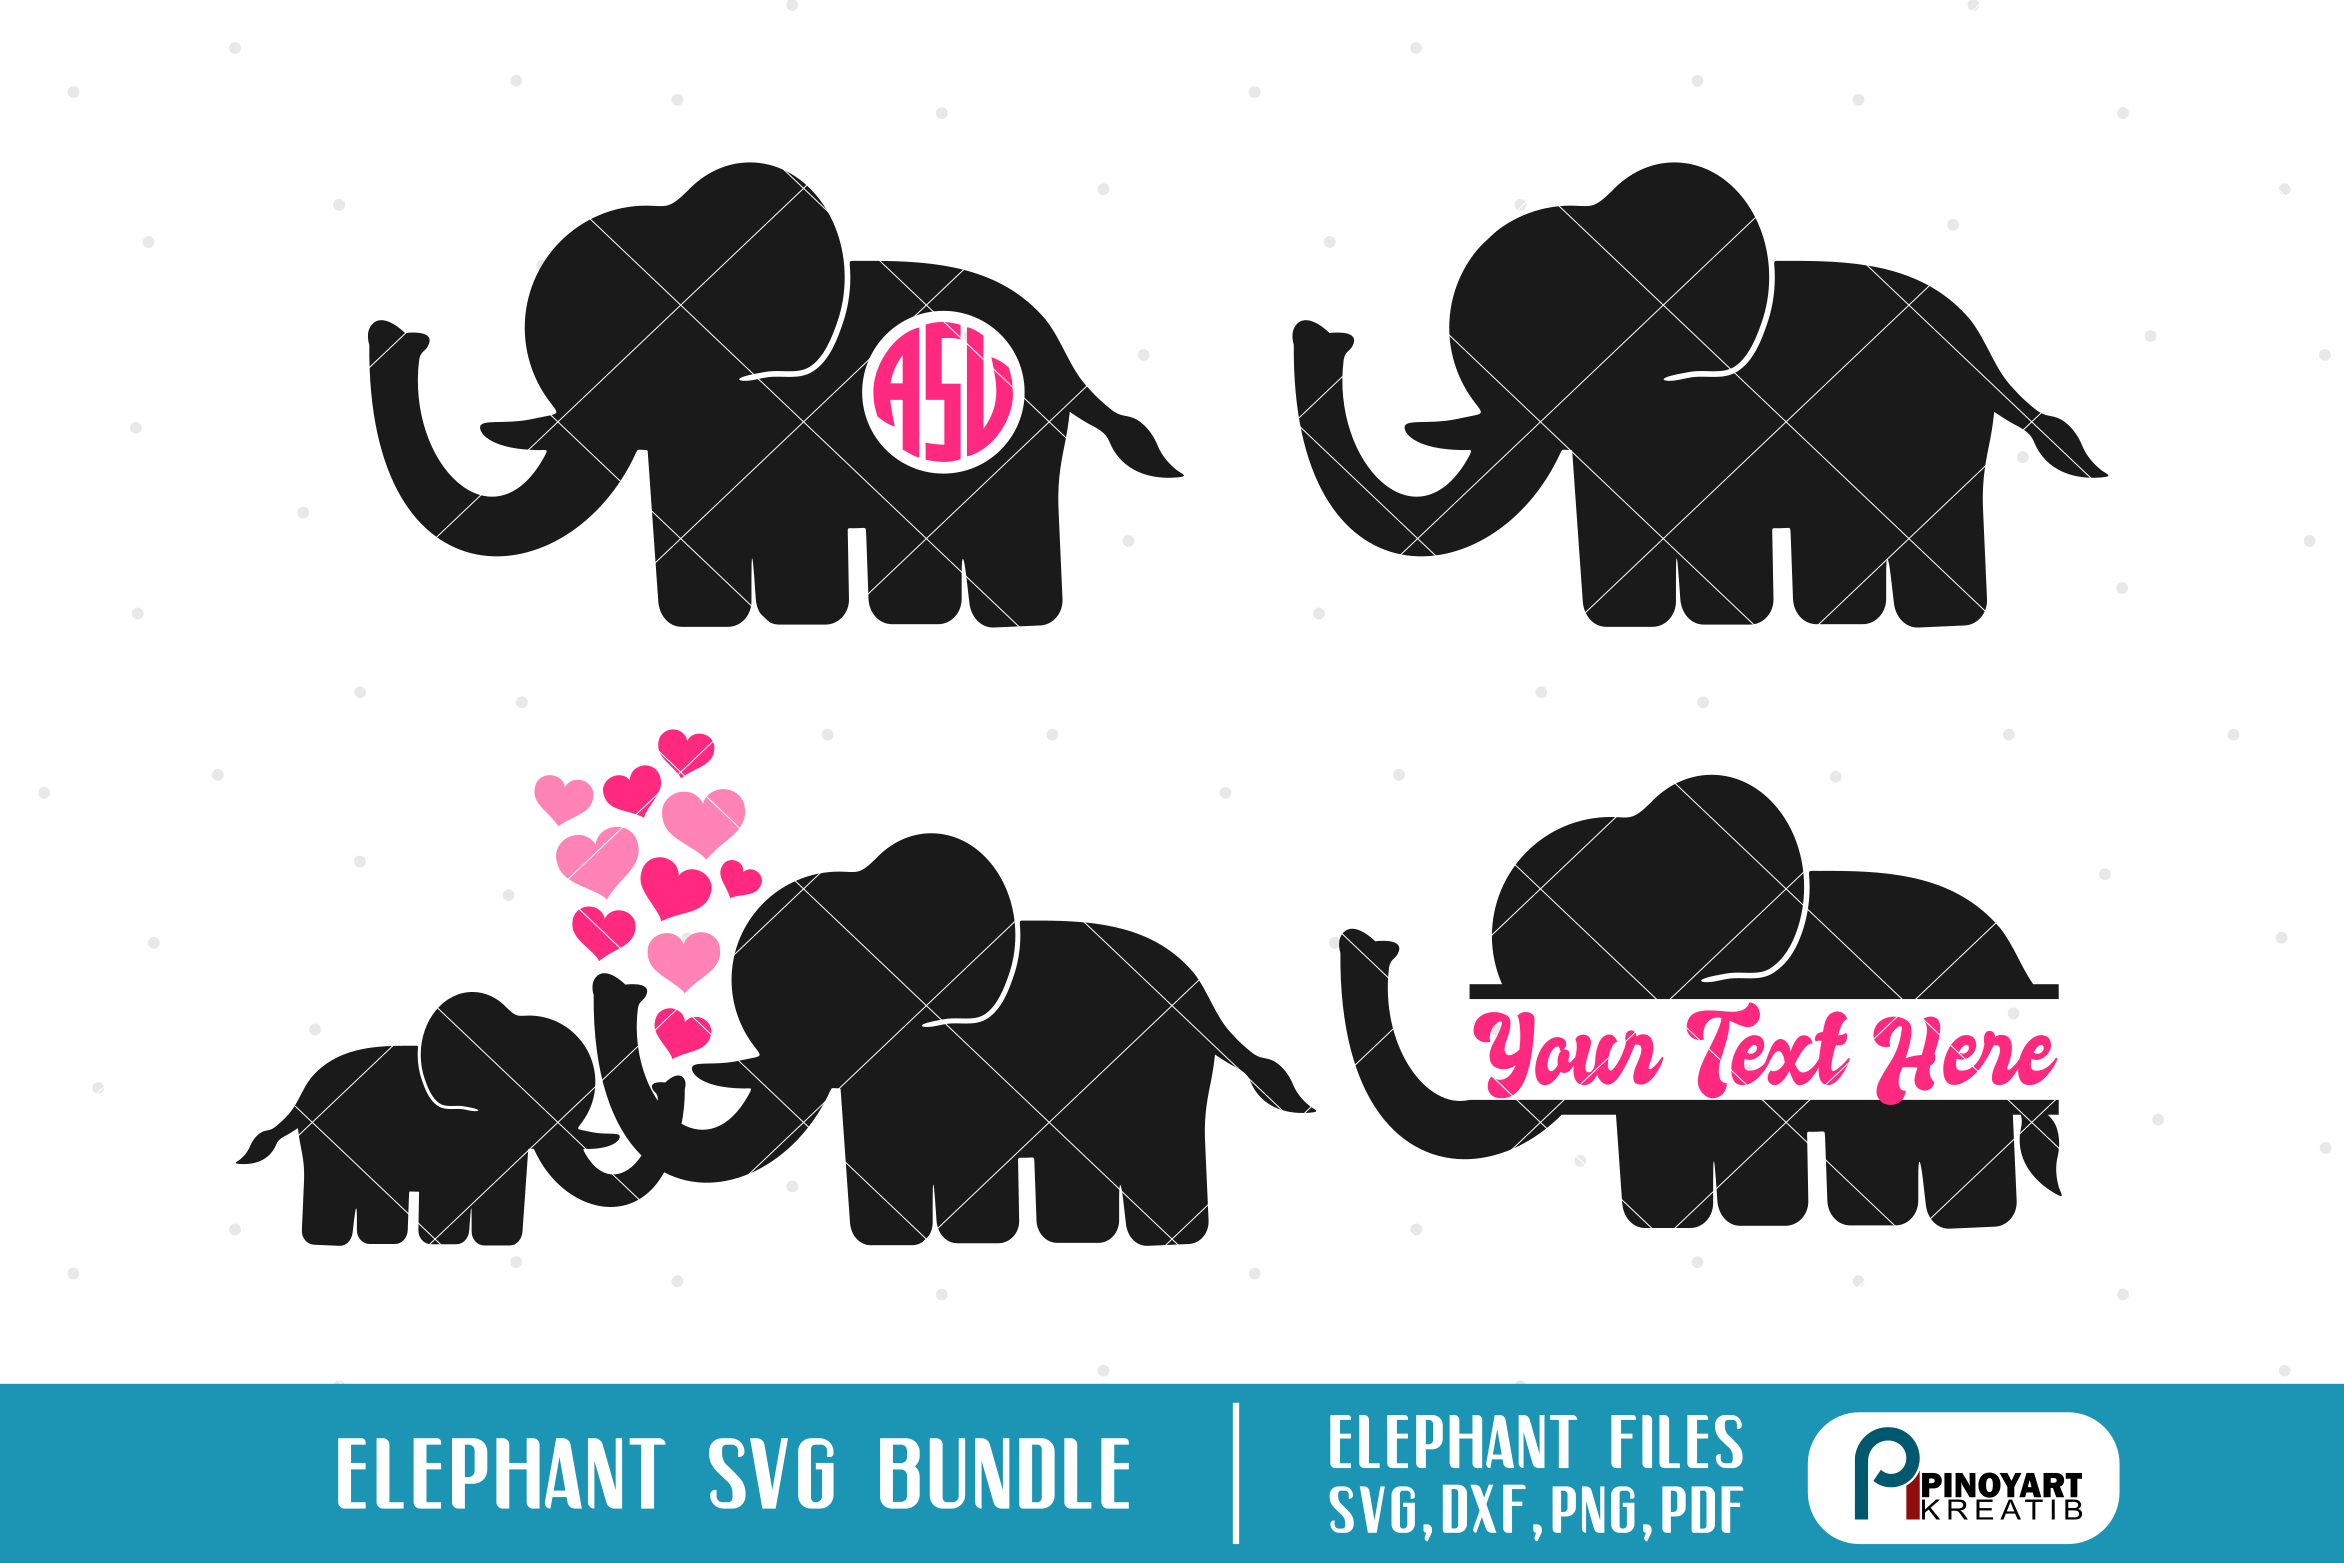 Download elephant svg, elephant svg file, baby elephant svg ...